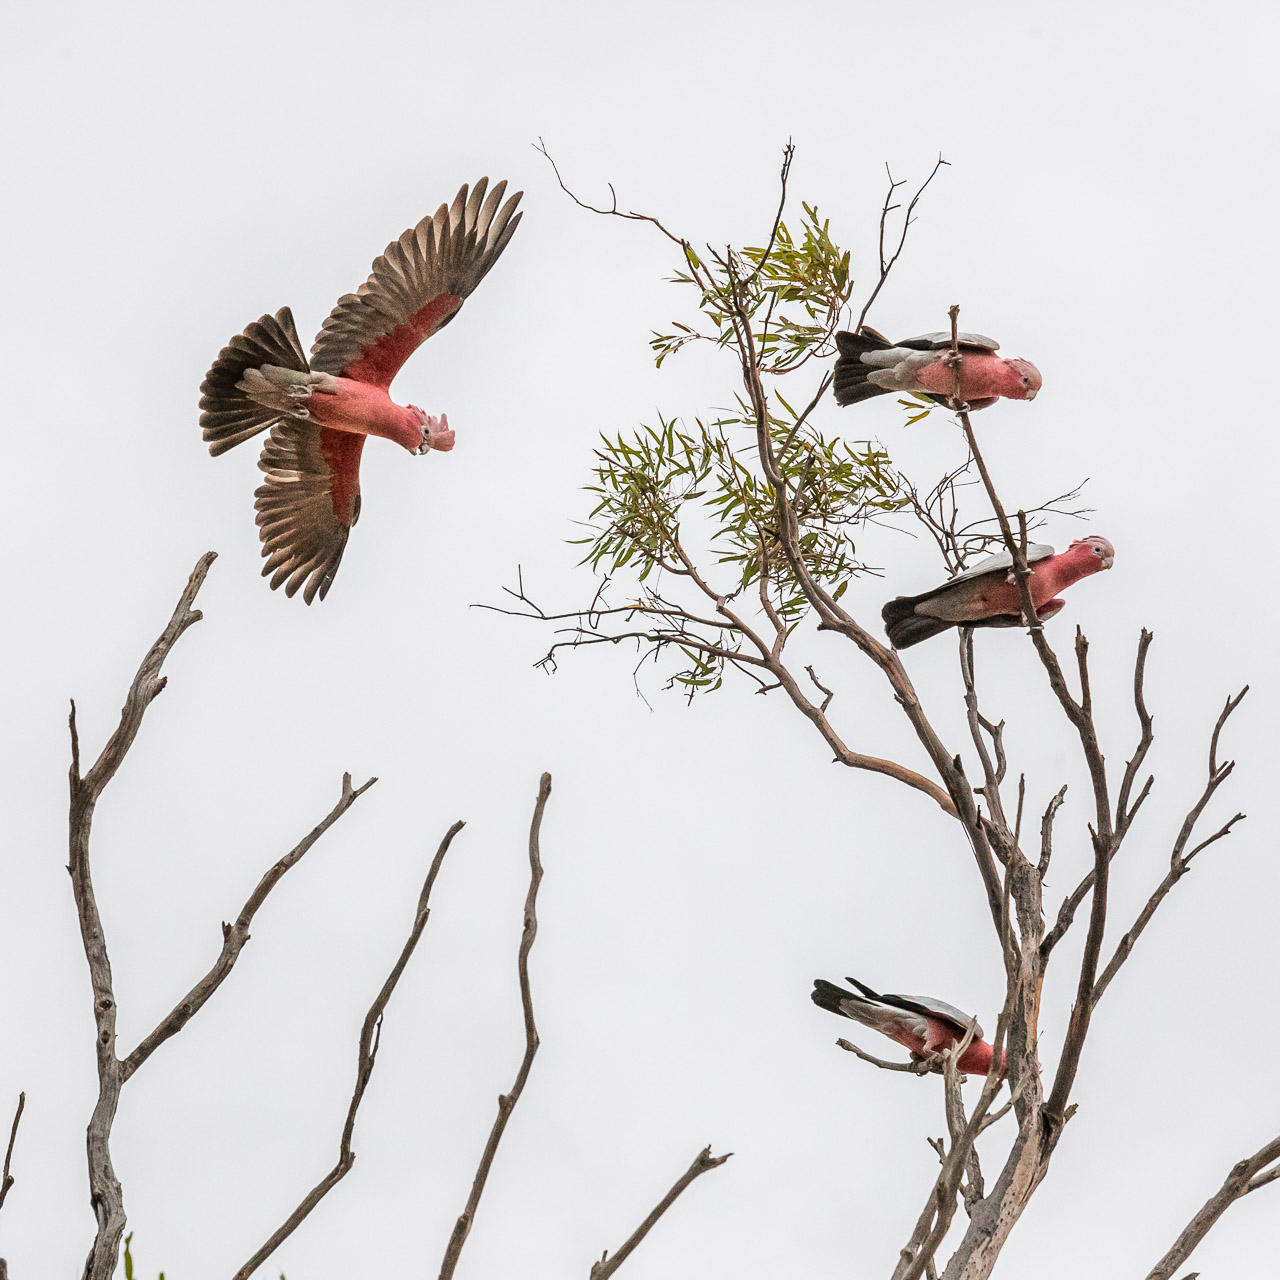 Flying galah and other galahs sitting in a salmon gum eucalyptus tree